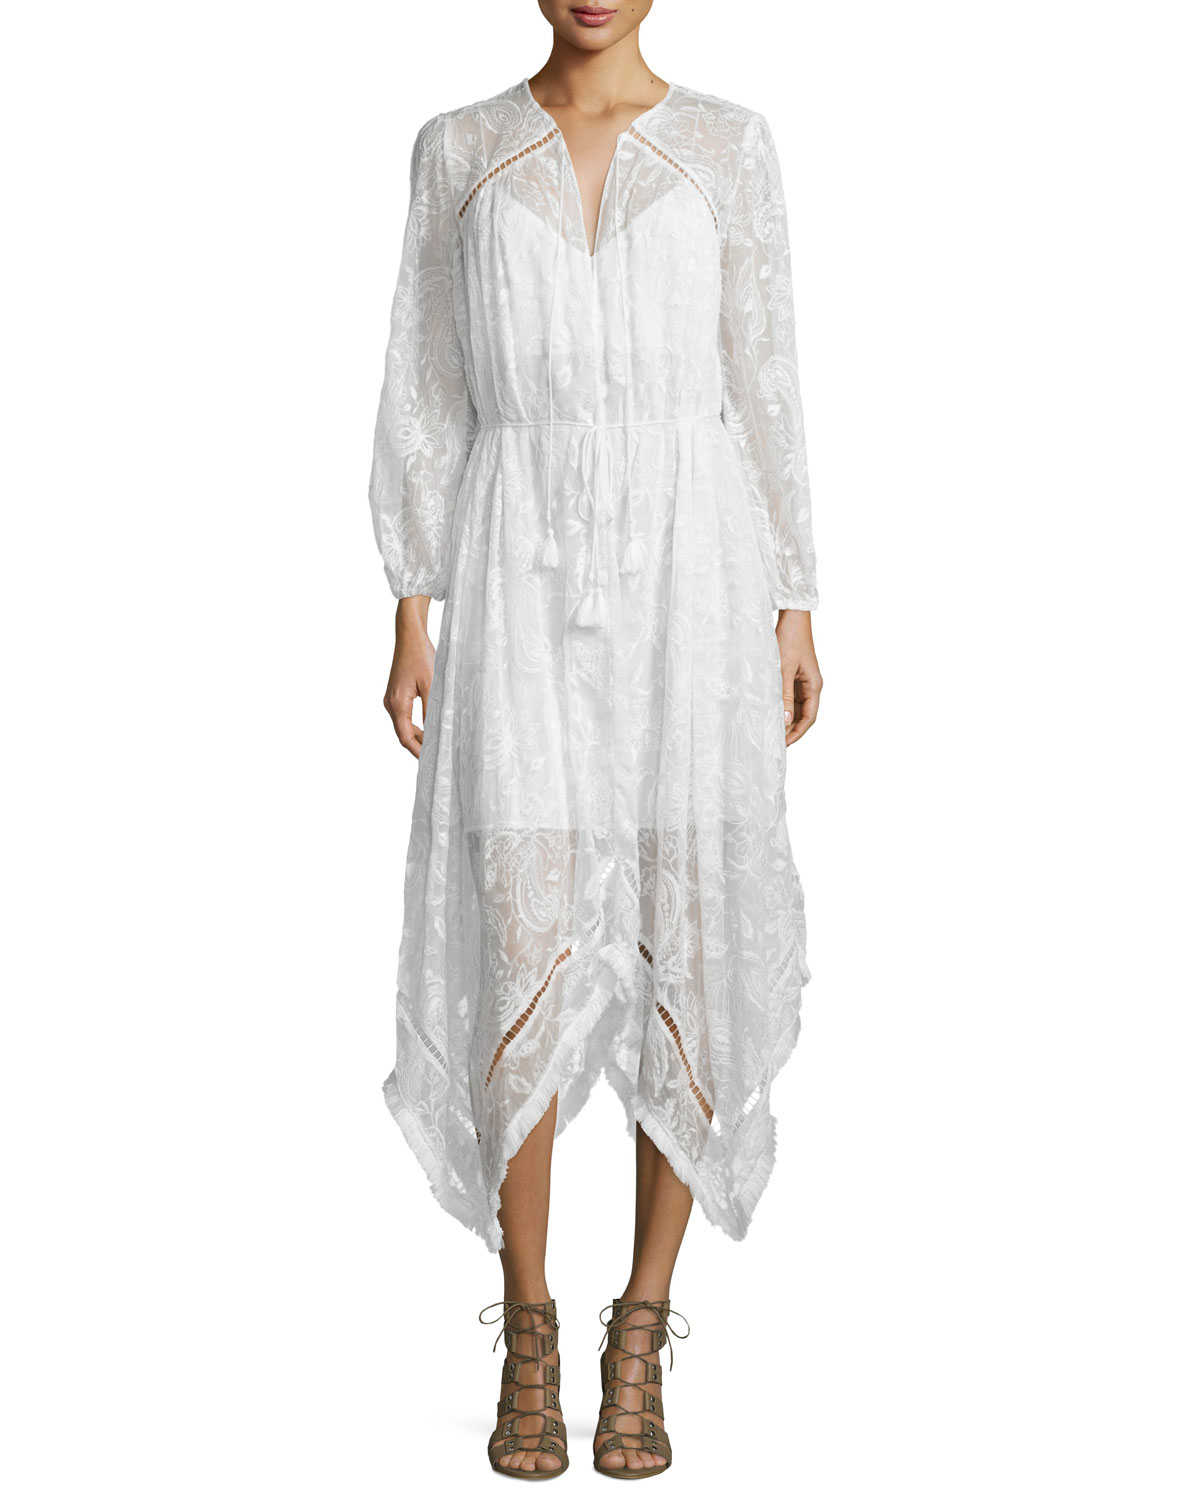 Zimmermann hanna embroidered dress with fringe trim in